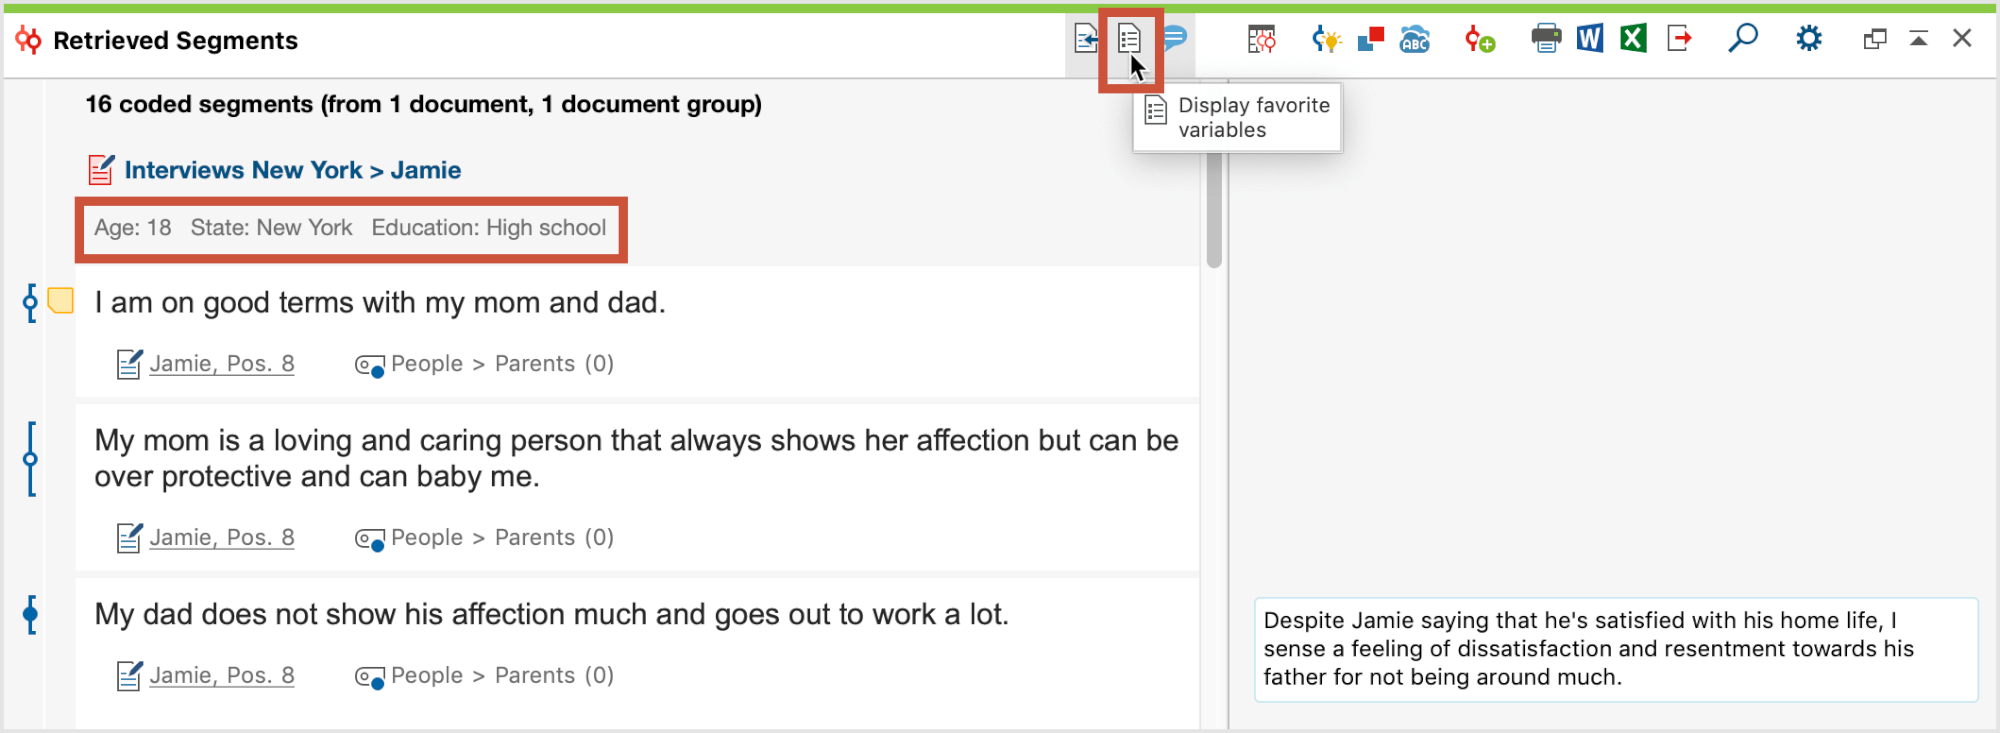 Show variable information in the Retrieved Segments window